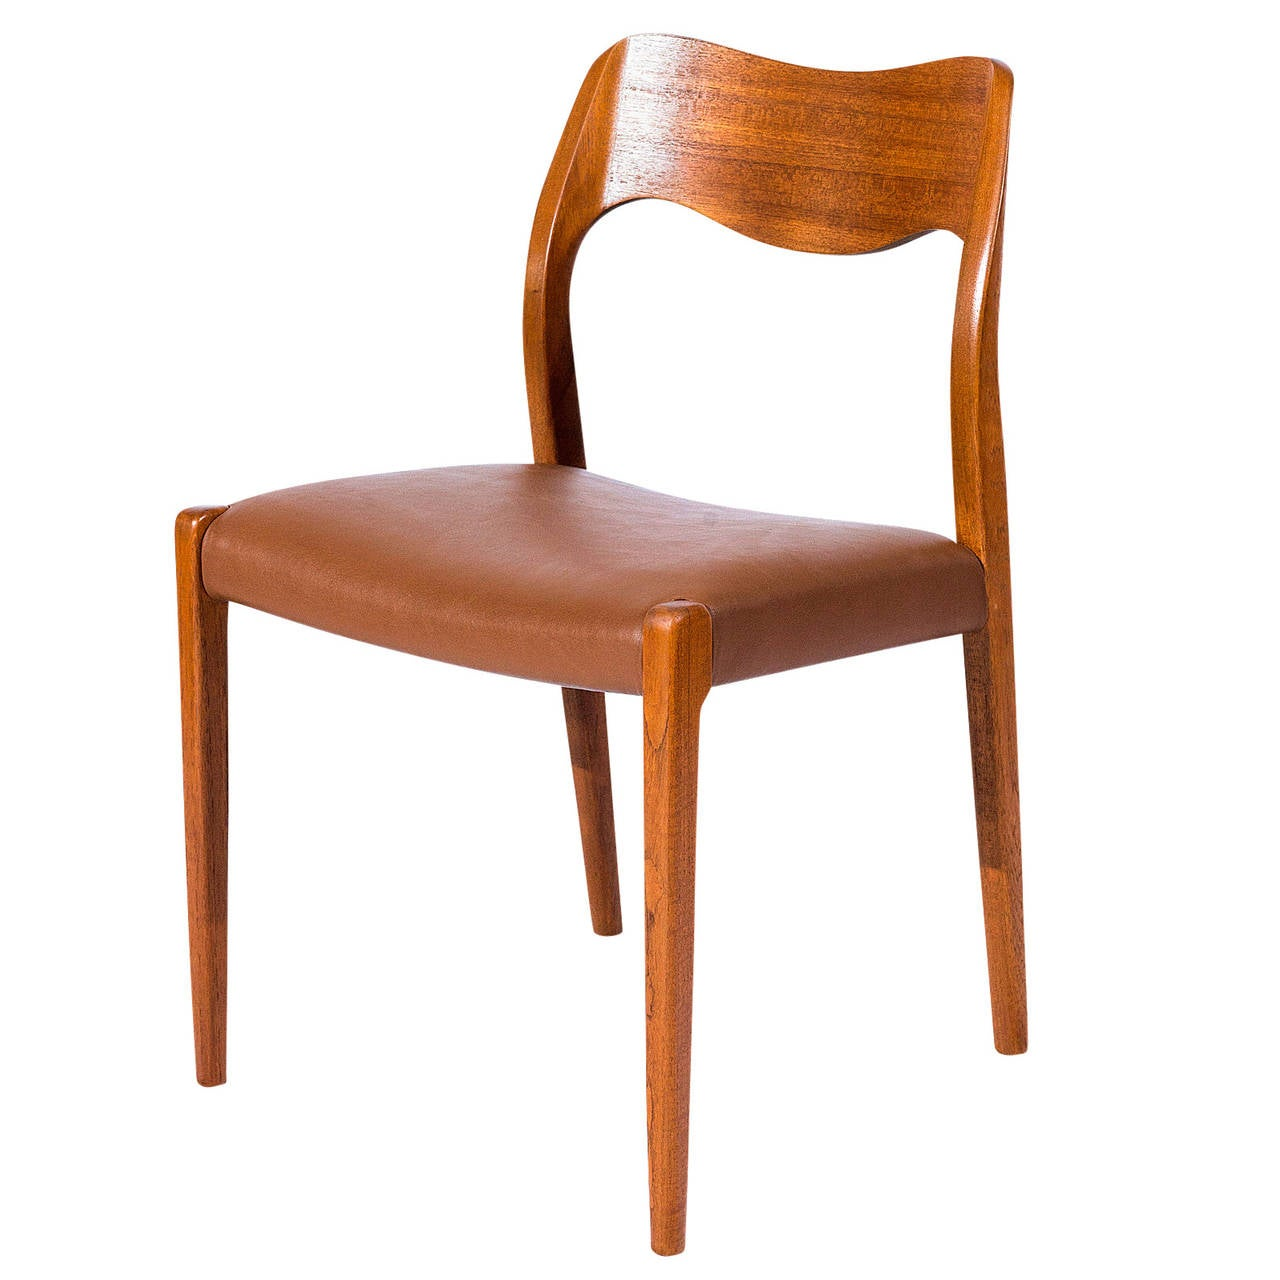 Set of 6 Teak Niels Møller Model No. 71 Dining Chairs Designed in 1951 and Produced by J. L. Moller Mobelfabrik